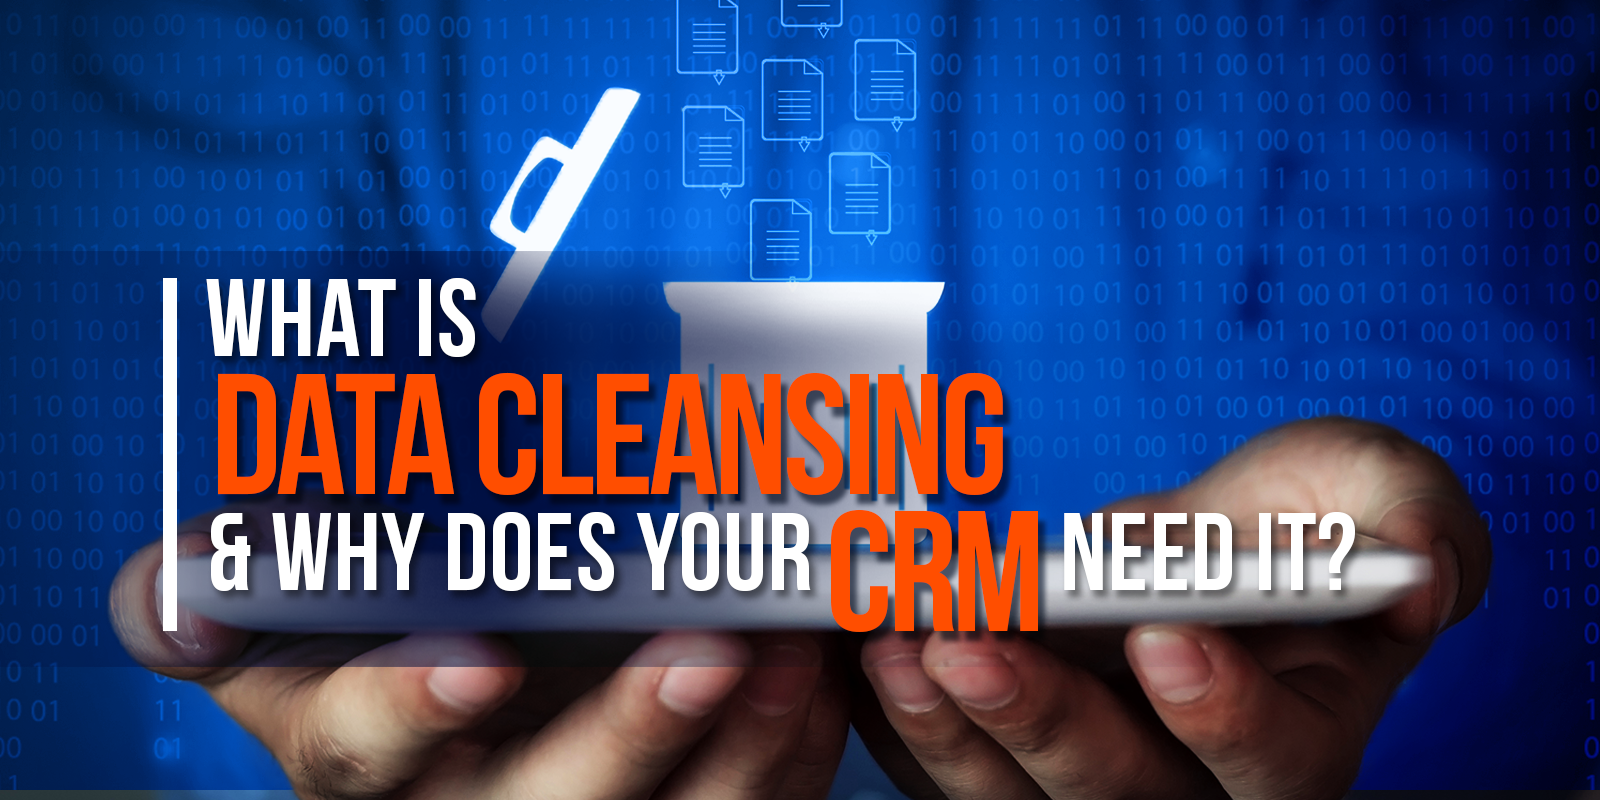 What Is Data Cleansing And Why Does Your CRM Need It?